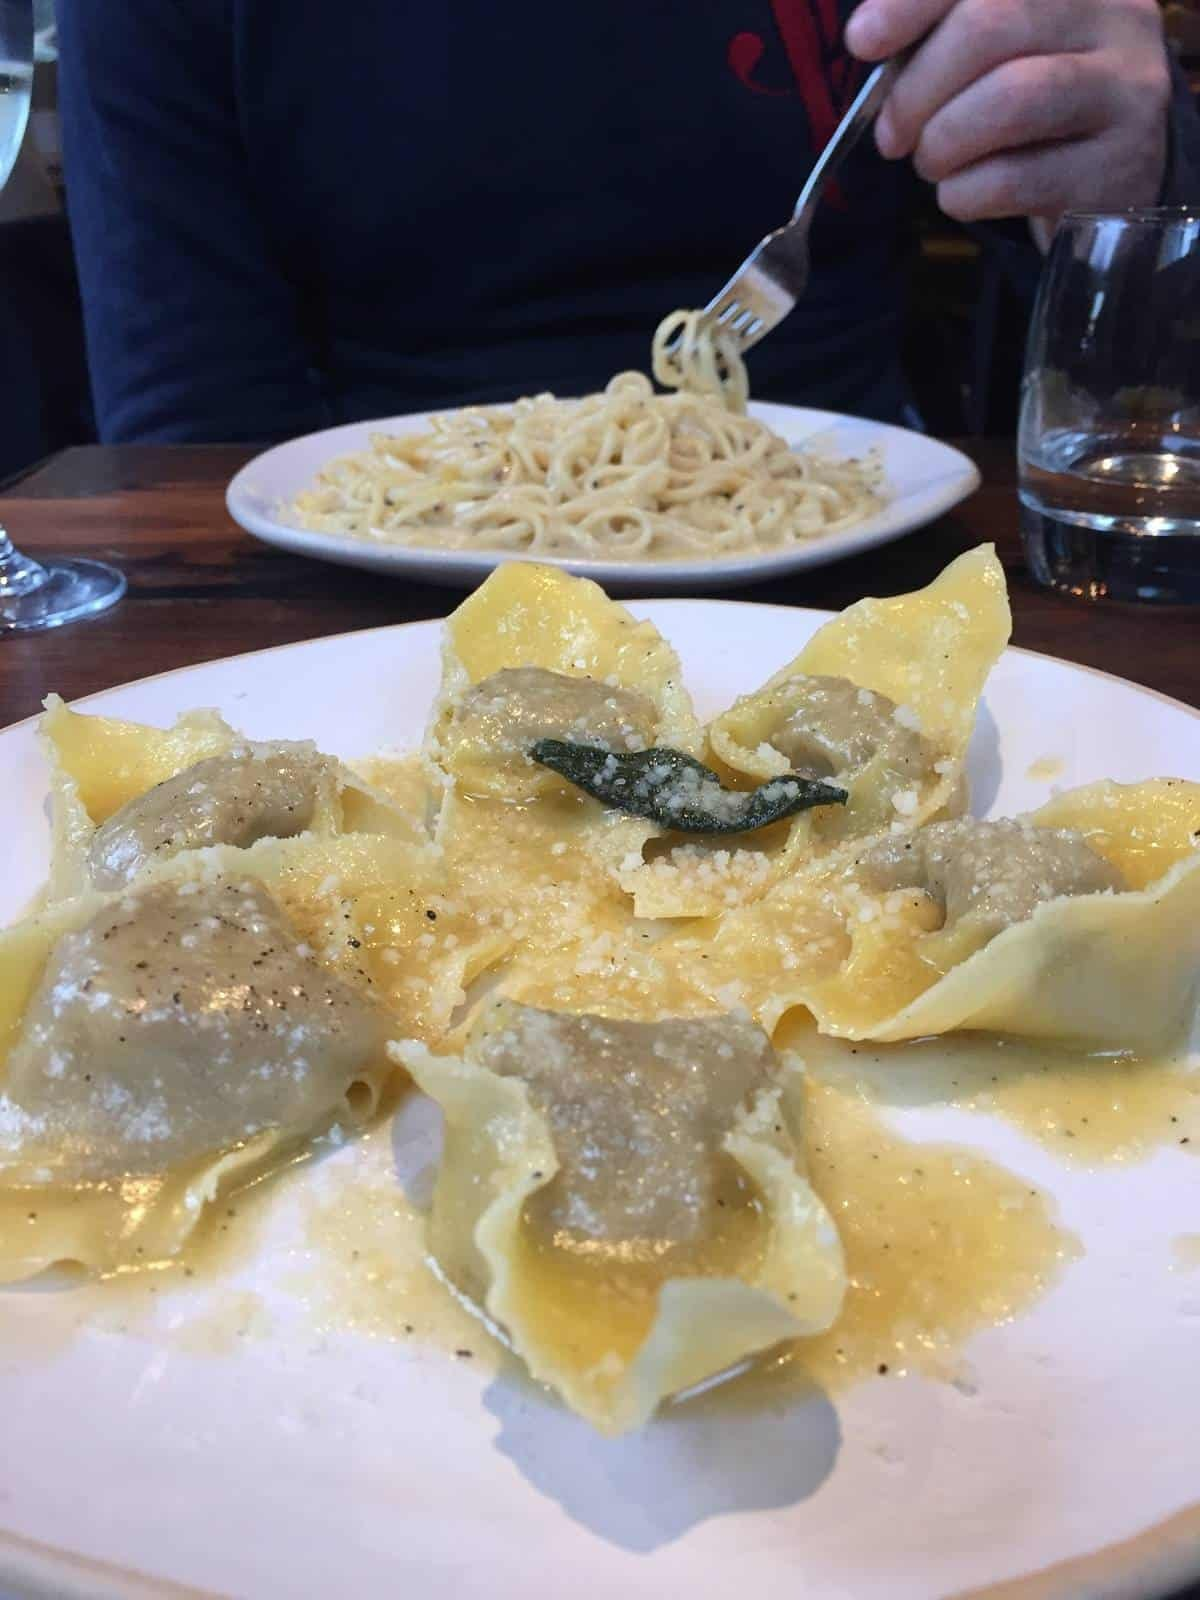 Tortelloni with roasted pork shoulder from Flour and Grape in Bermondsey